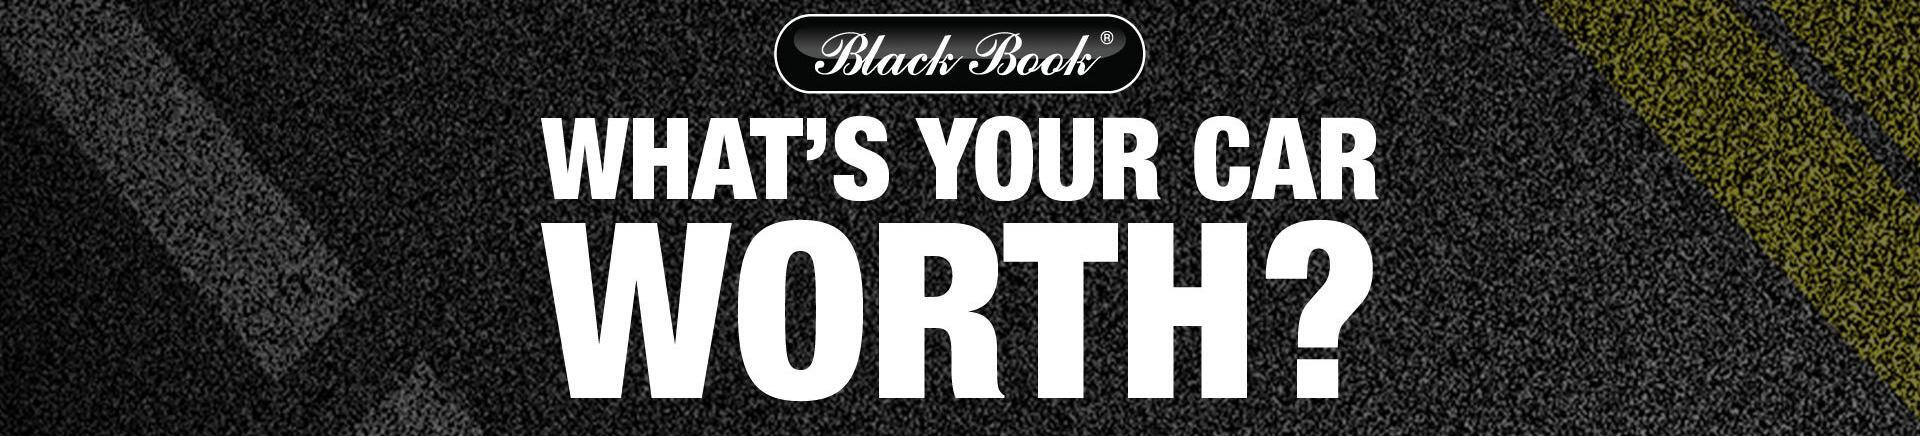 Black Book Trade In >> Get The Black Book Value For My Trade In What Is My Trade